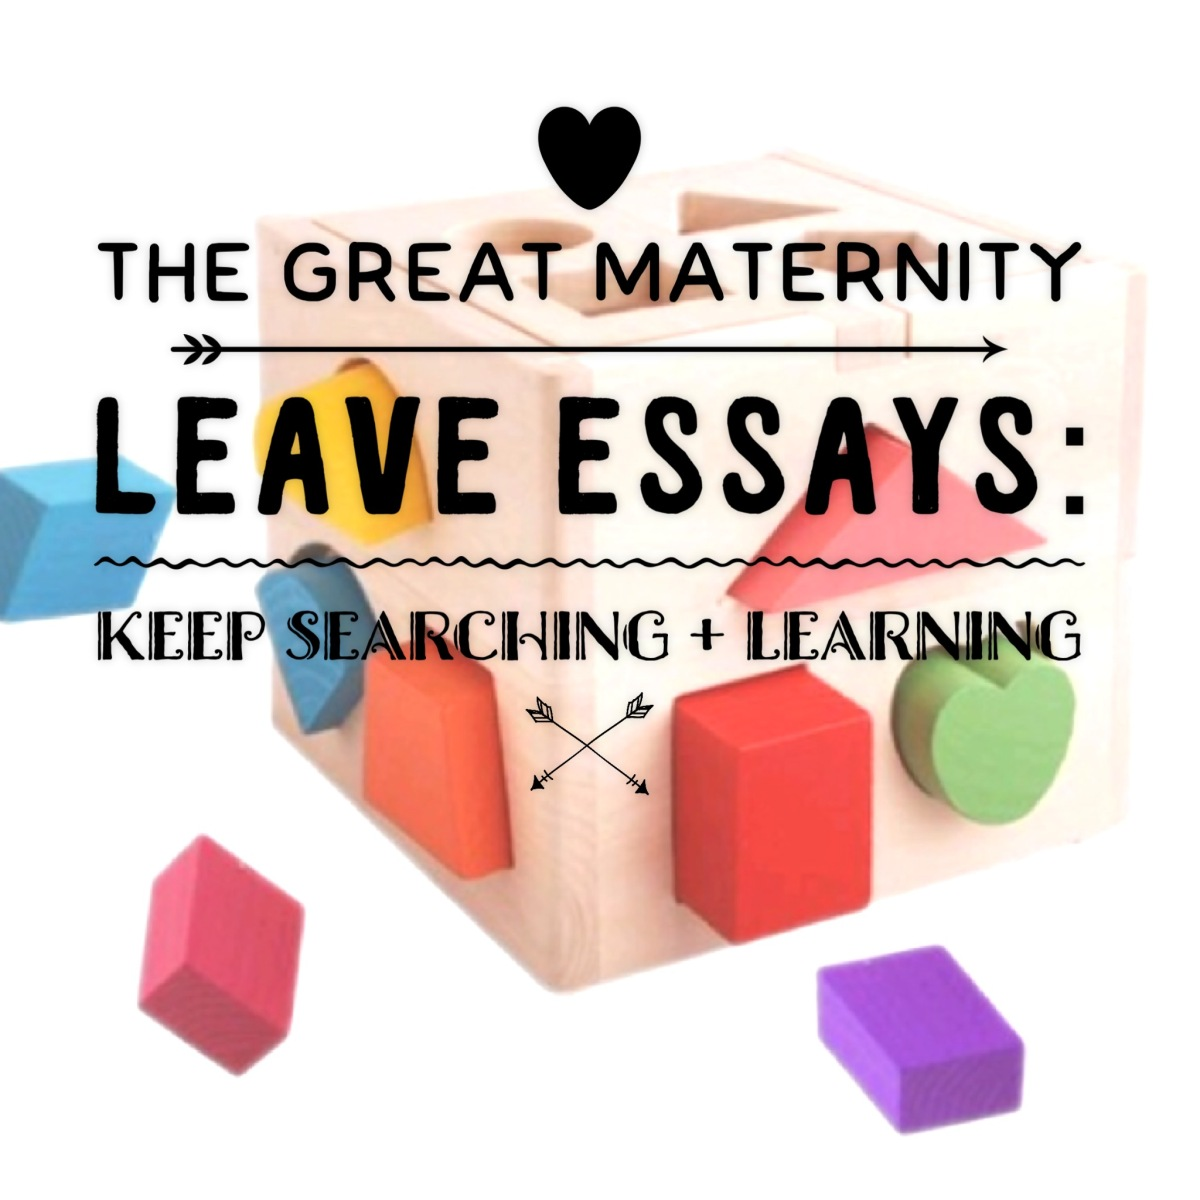 The Great Maternity Leave Essays:  How to Become Deeply Inspired andMotivated